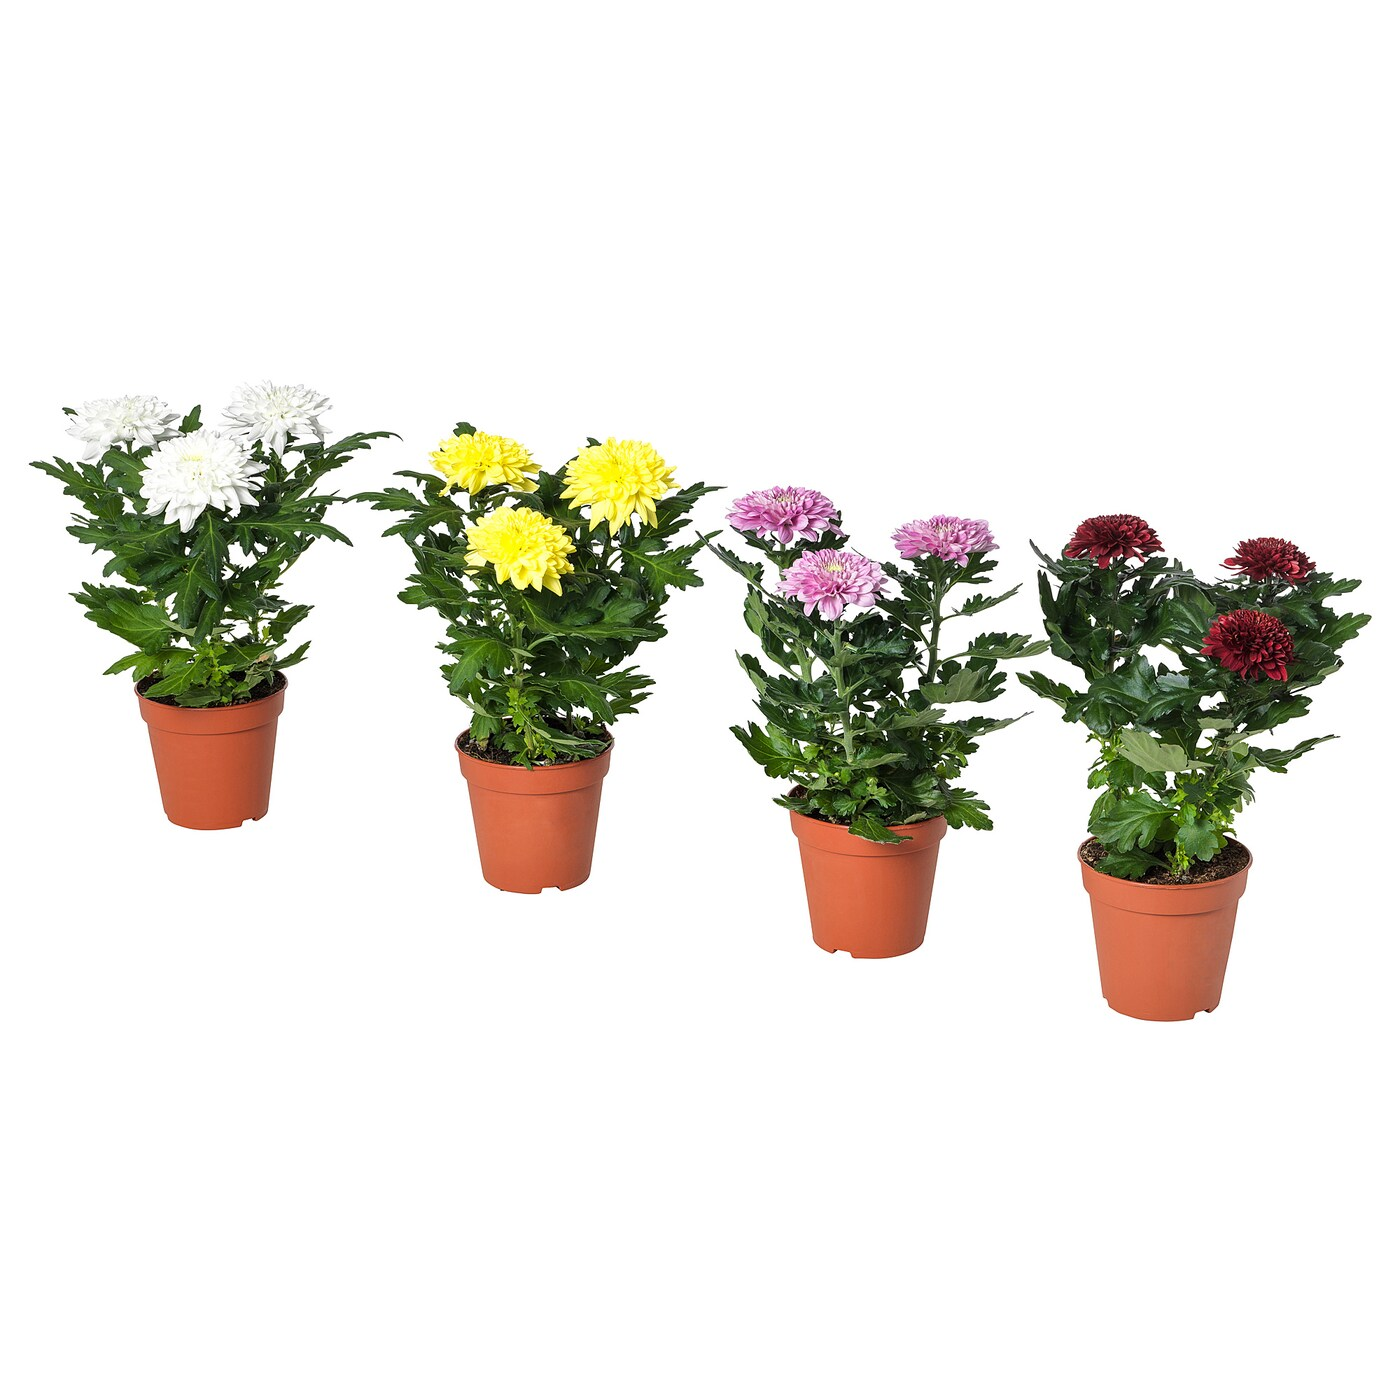 Small House Plants With Flowers House Plants Cactus Outdoor And Indoor Plants Ikea